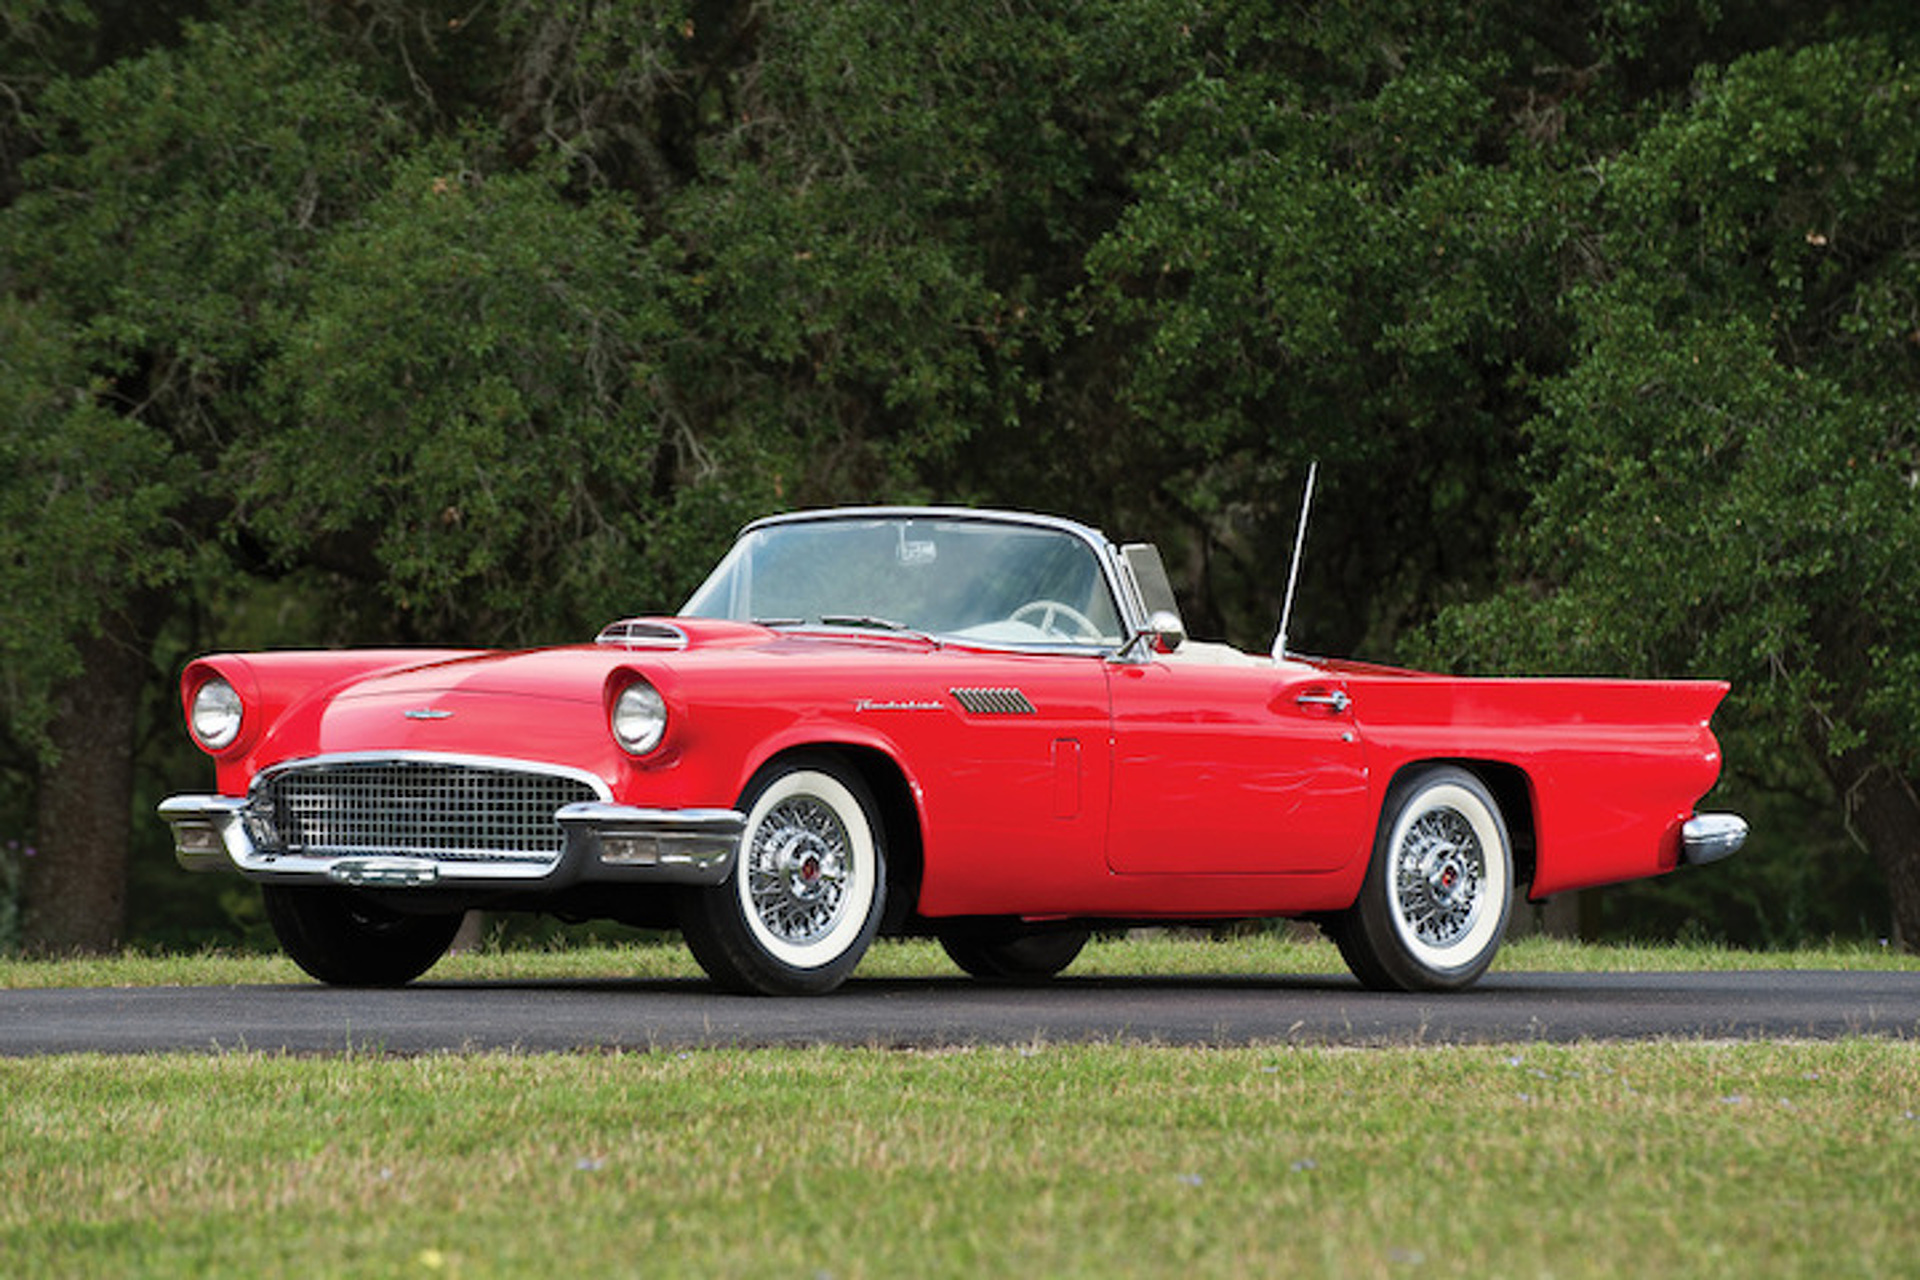 Corvette For Sale >> The 1957 Ford Thunderbird Almost Killed the Corvette